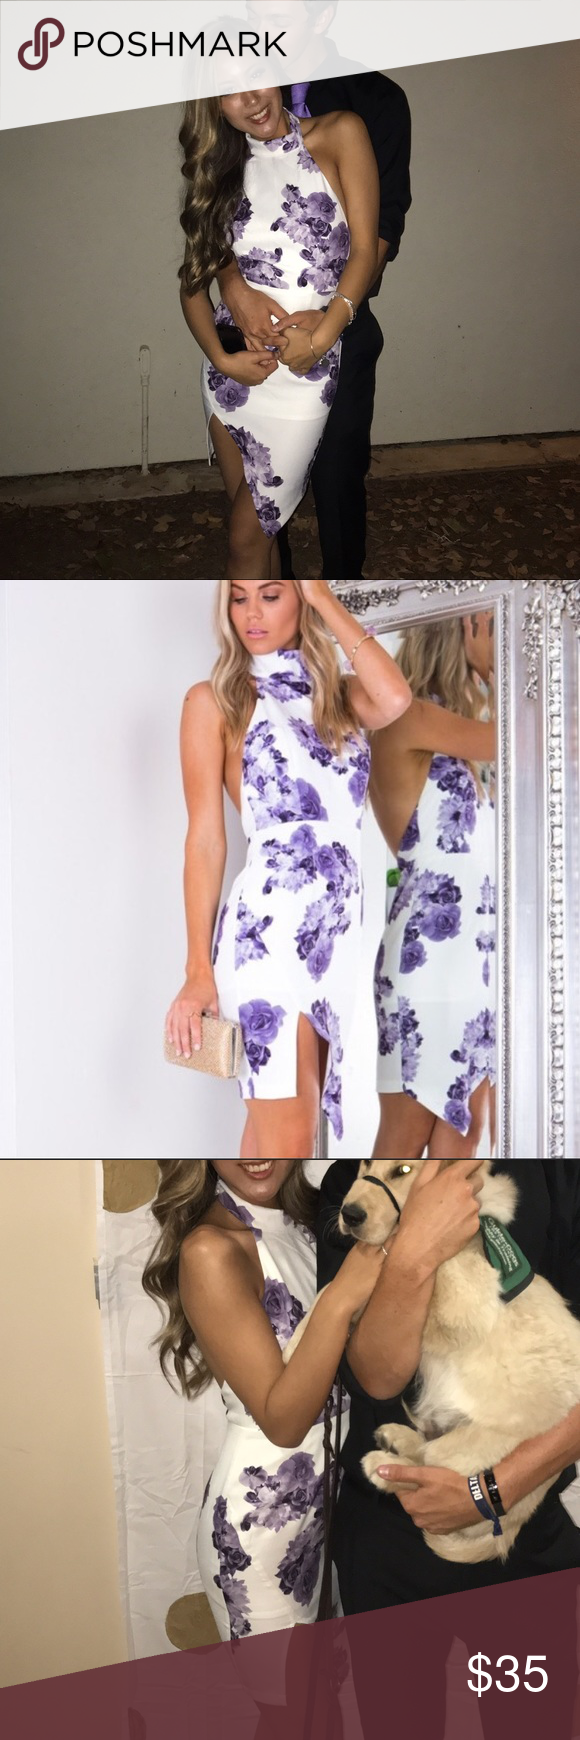 White/purple floral dress WORN ONCE White dress with purple floral print Sabo Skirt Dresses